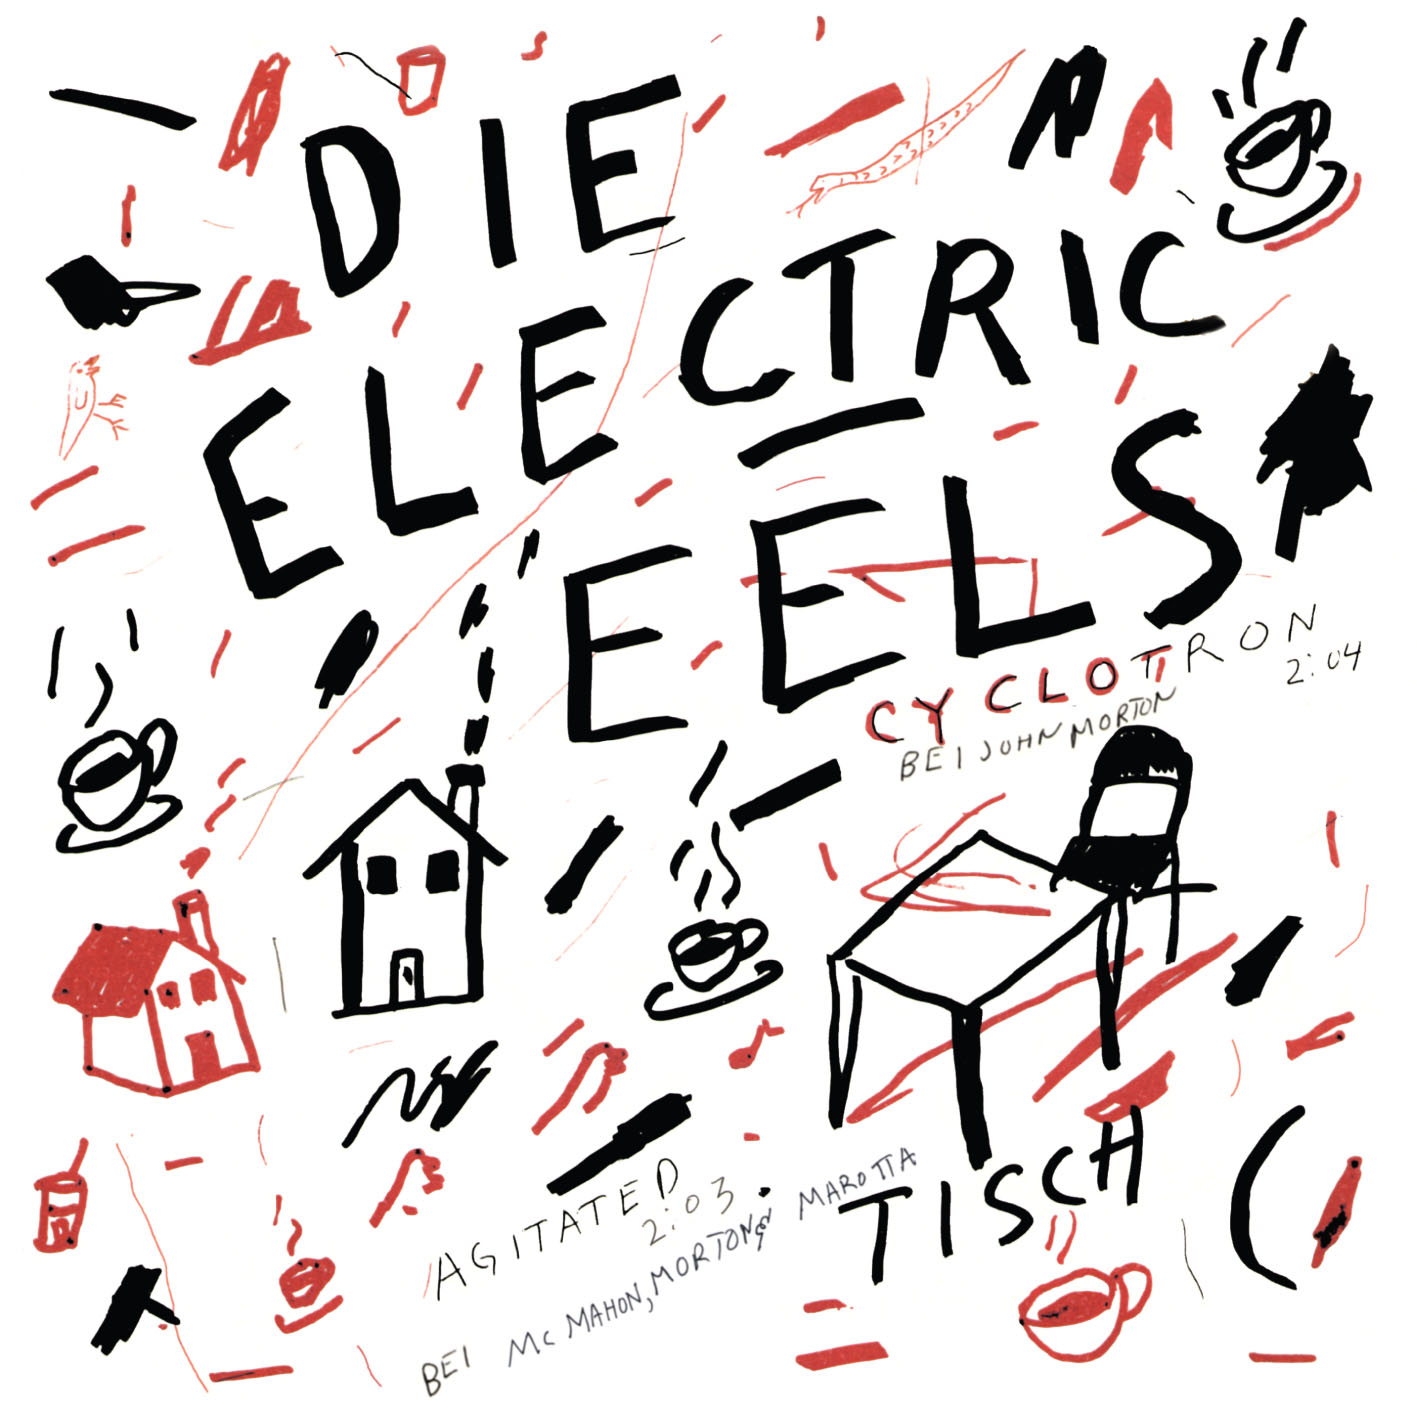 ELECTRIC EELS - (I'M SO) AGITATED / CYCLOTRON